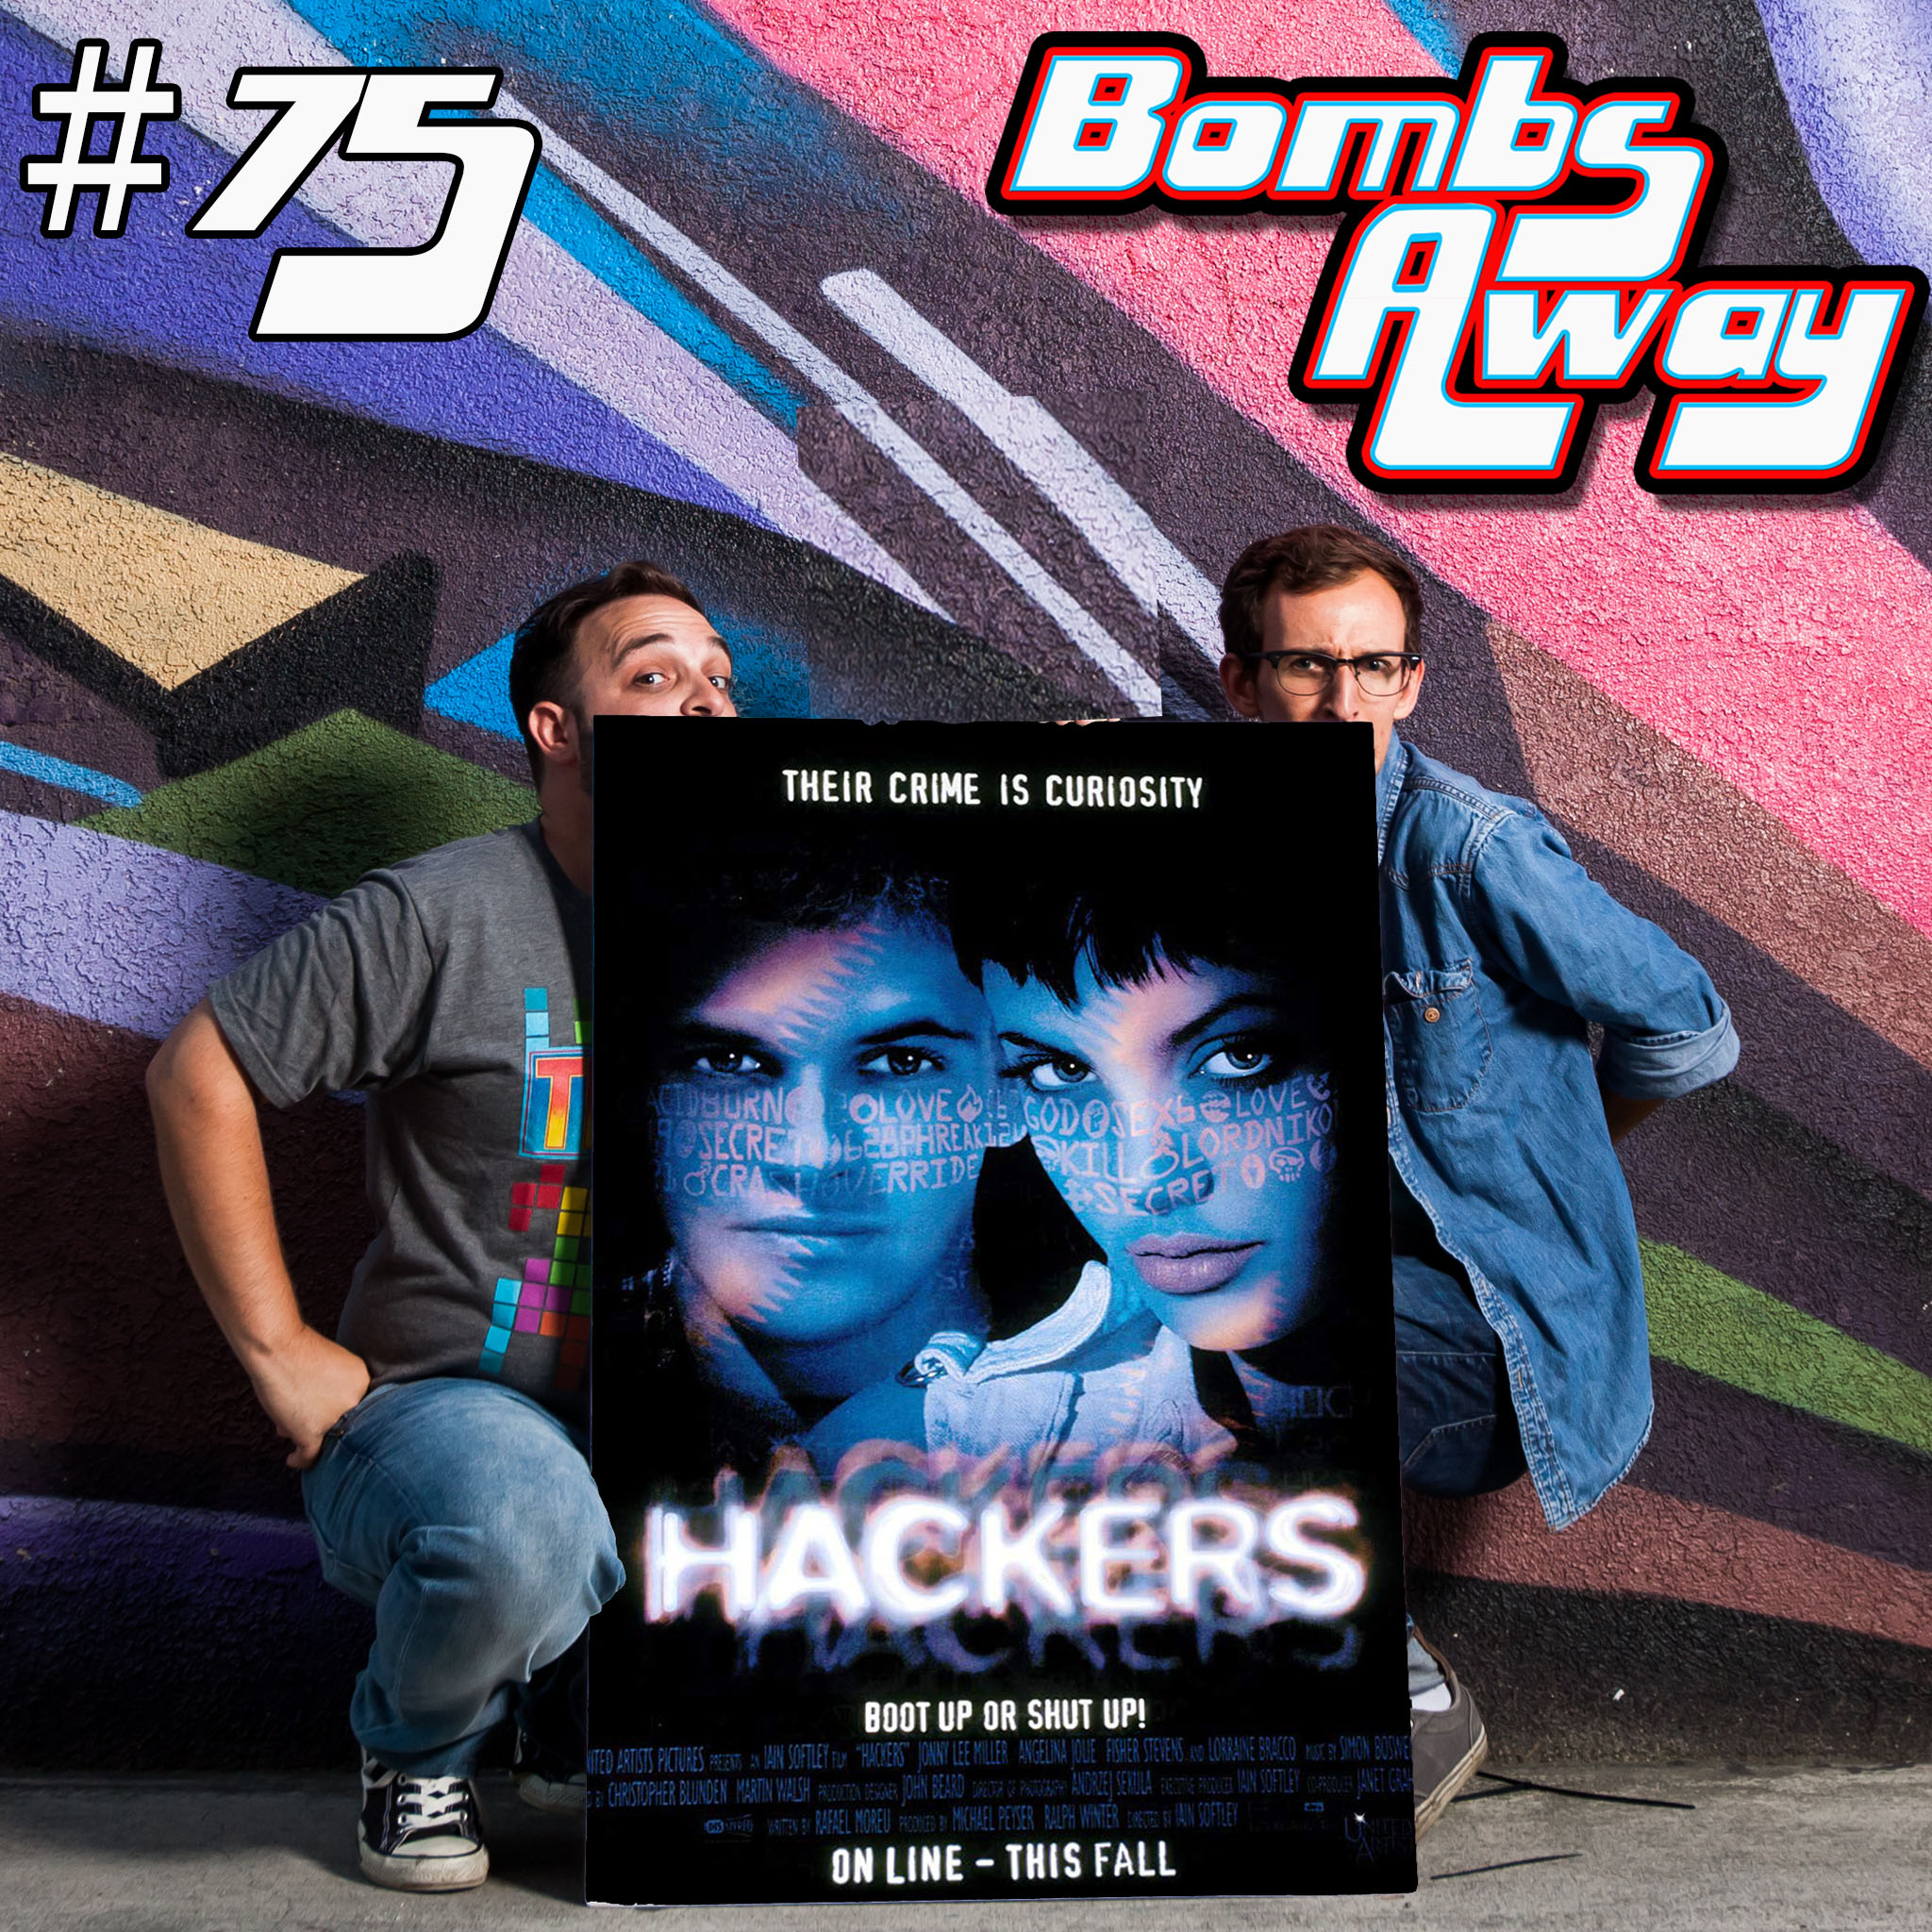 Episode 75 - Hackers (1995) [w/ Walter Thornburgh]